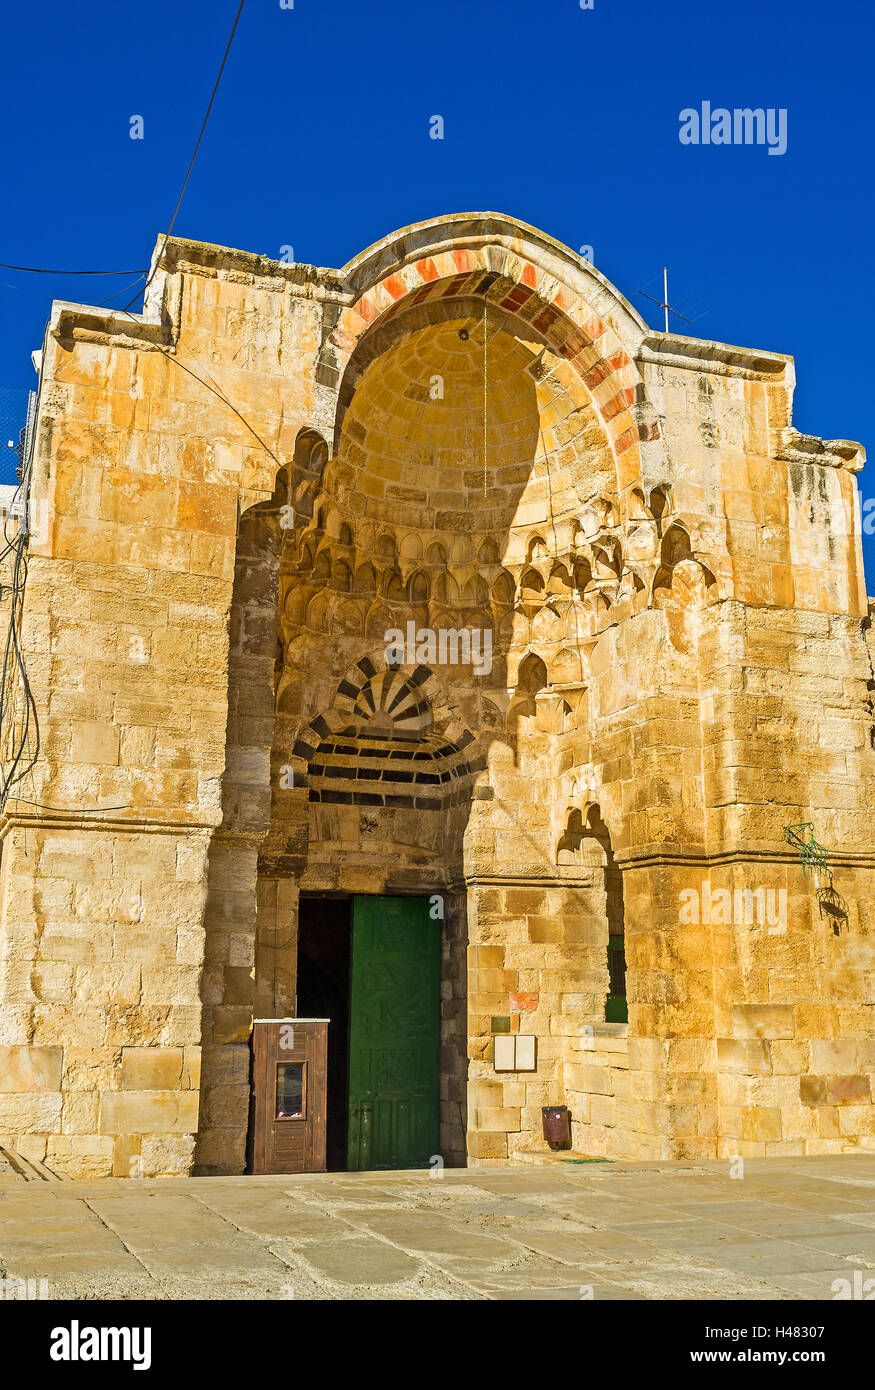 The Cotton Merchants' Gate is one of the most beautiful ways, connecting the old Jerusalem with the Temple Mount - Stock Image